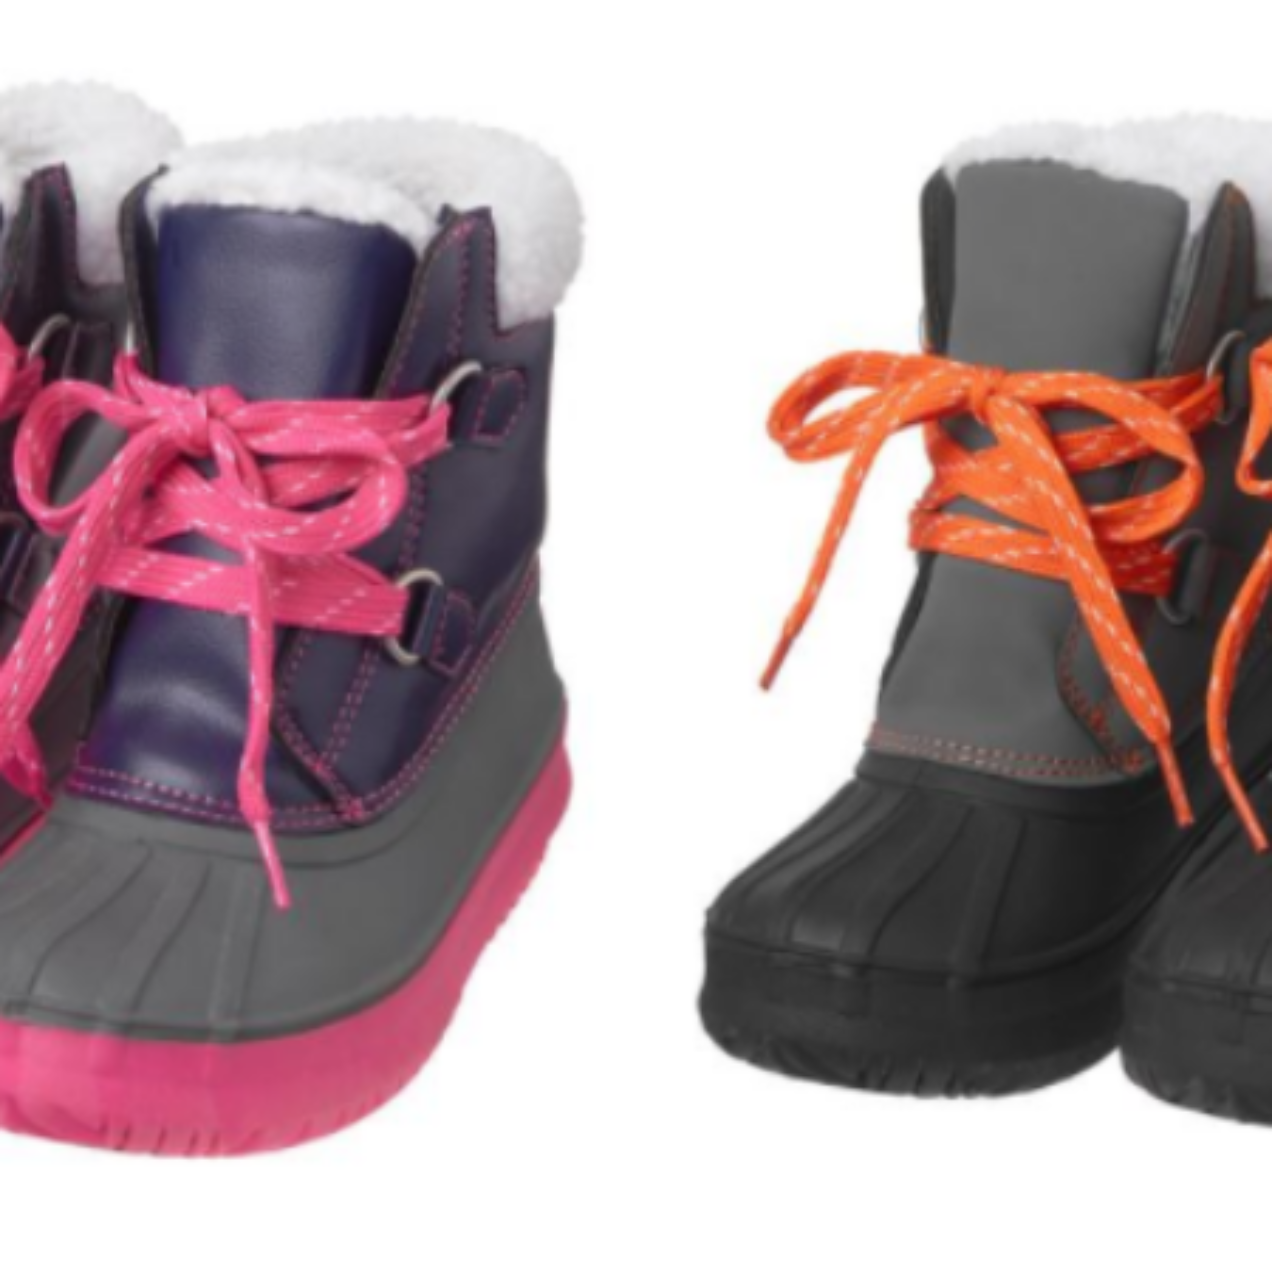 Gymboree Duck Boots Only $14.40 Or Less Shipped (Regular $49.95)